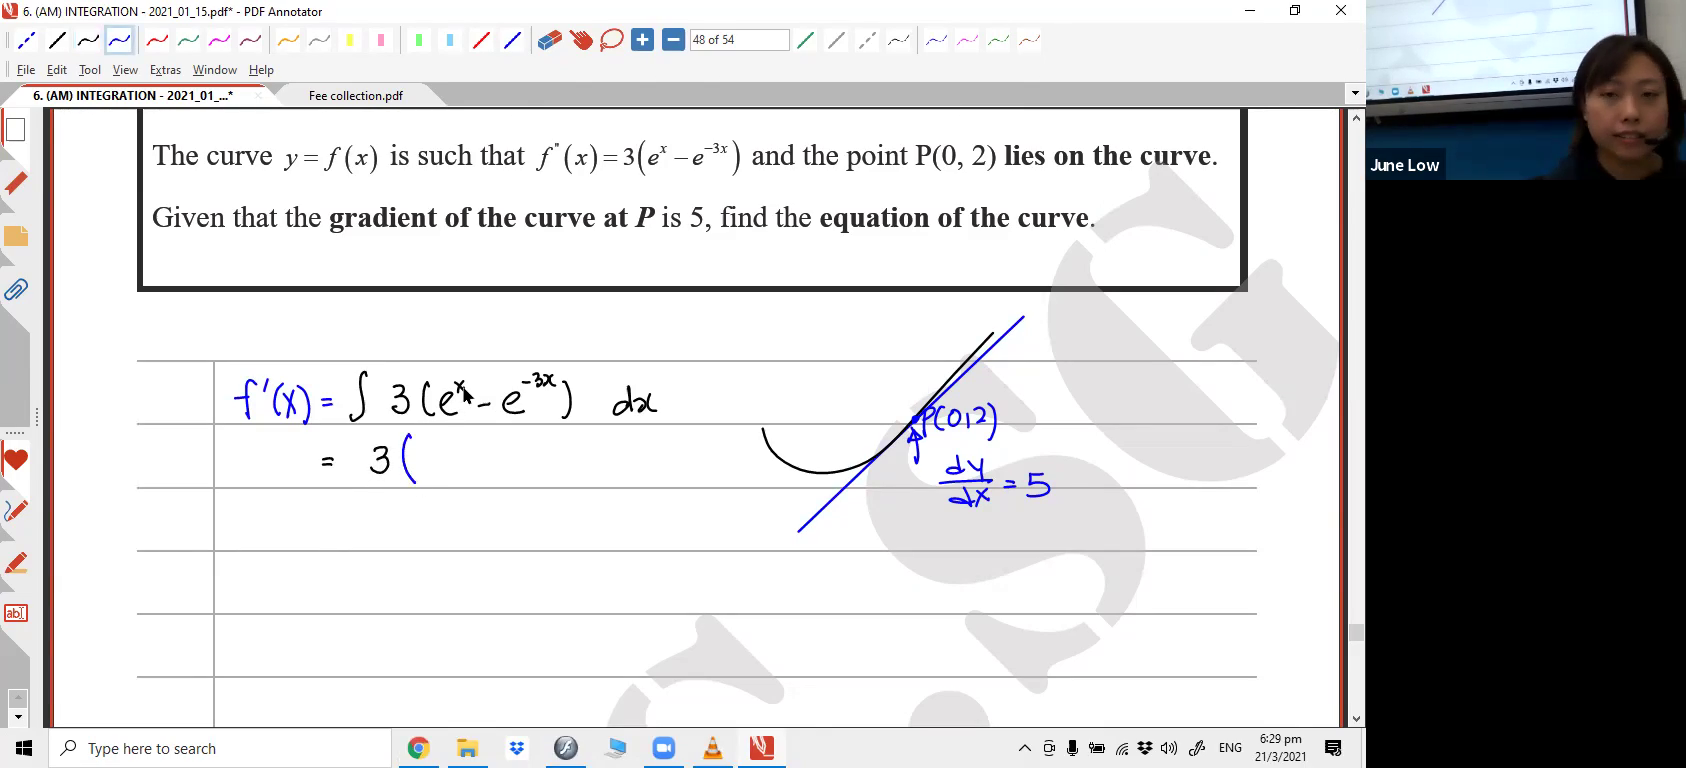 [INTEGRATION] Exponential Functions